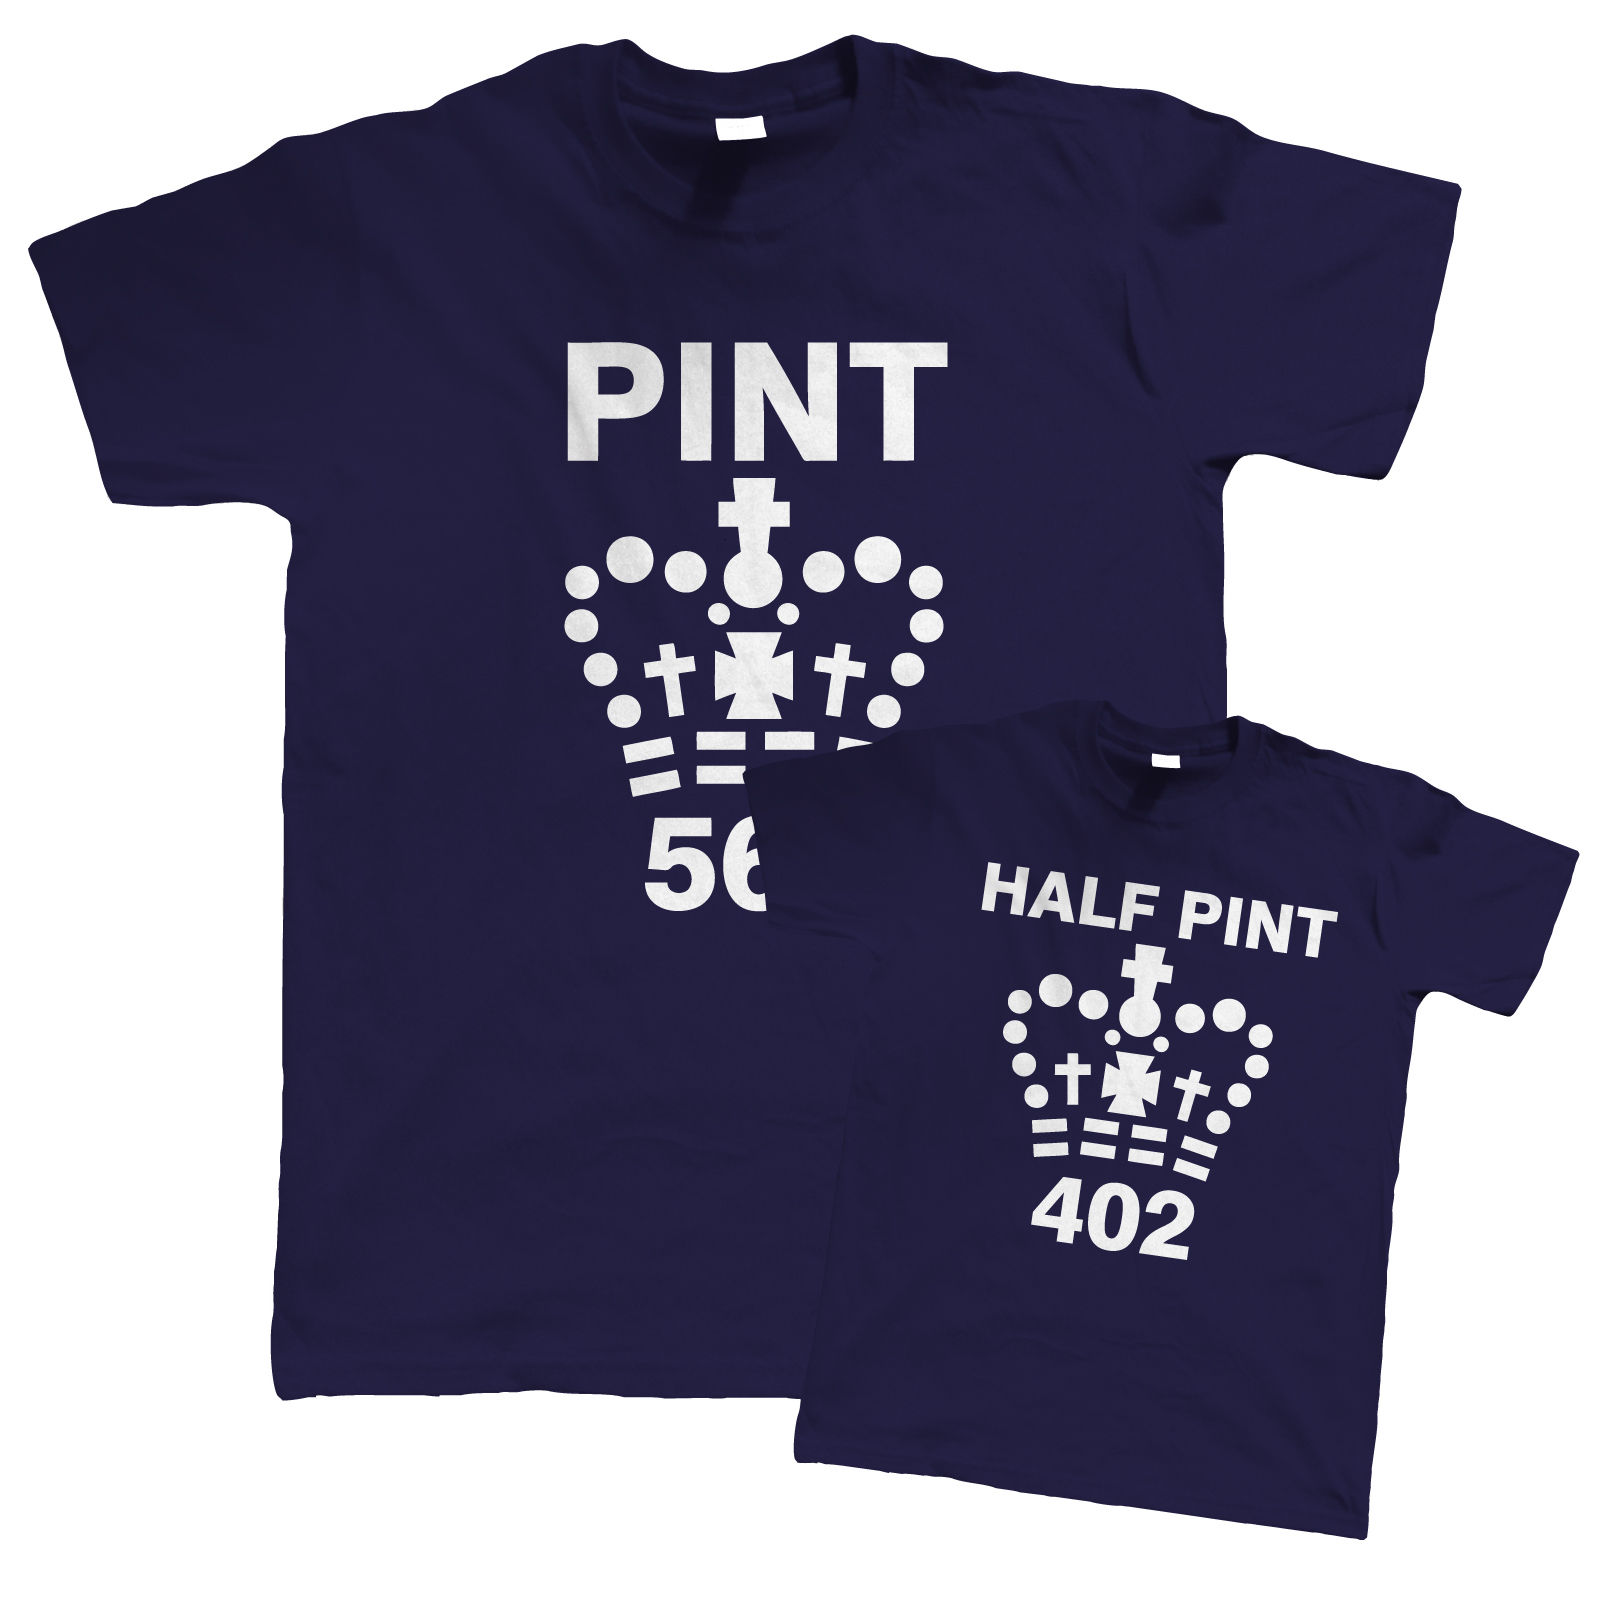 pint and half pint funny t shirt father son daughter. Black Bedroom Furniture Sets. Home Design Ideas